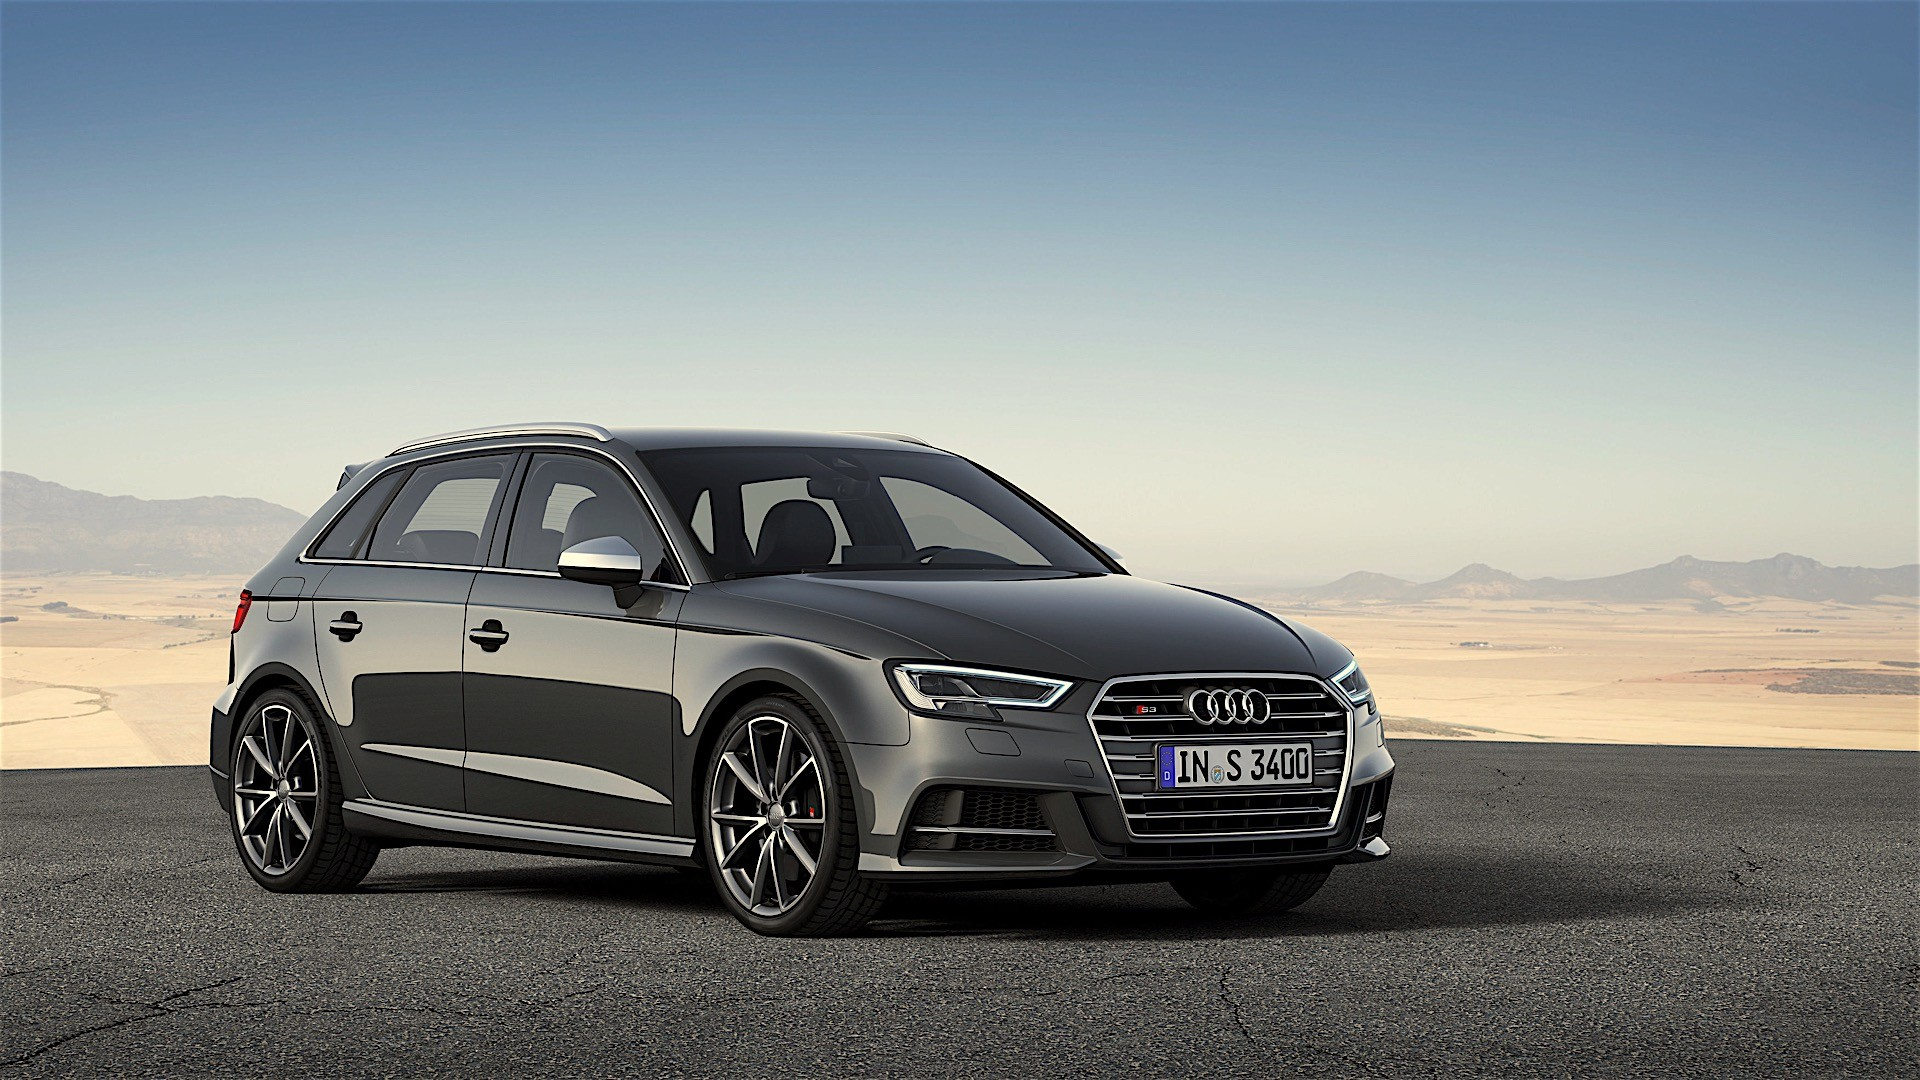 2017 Audi A3 Facelift Configurator Launched In Germany S3